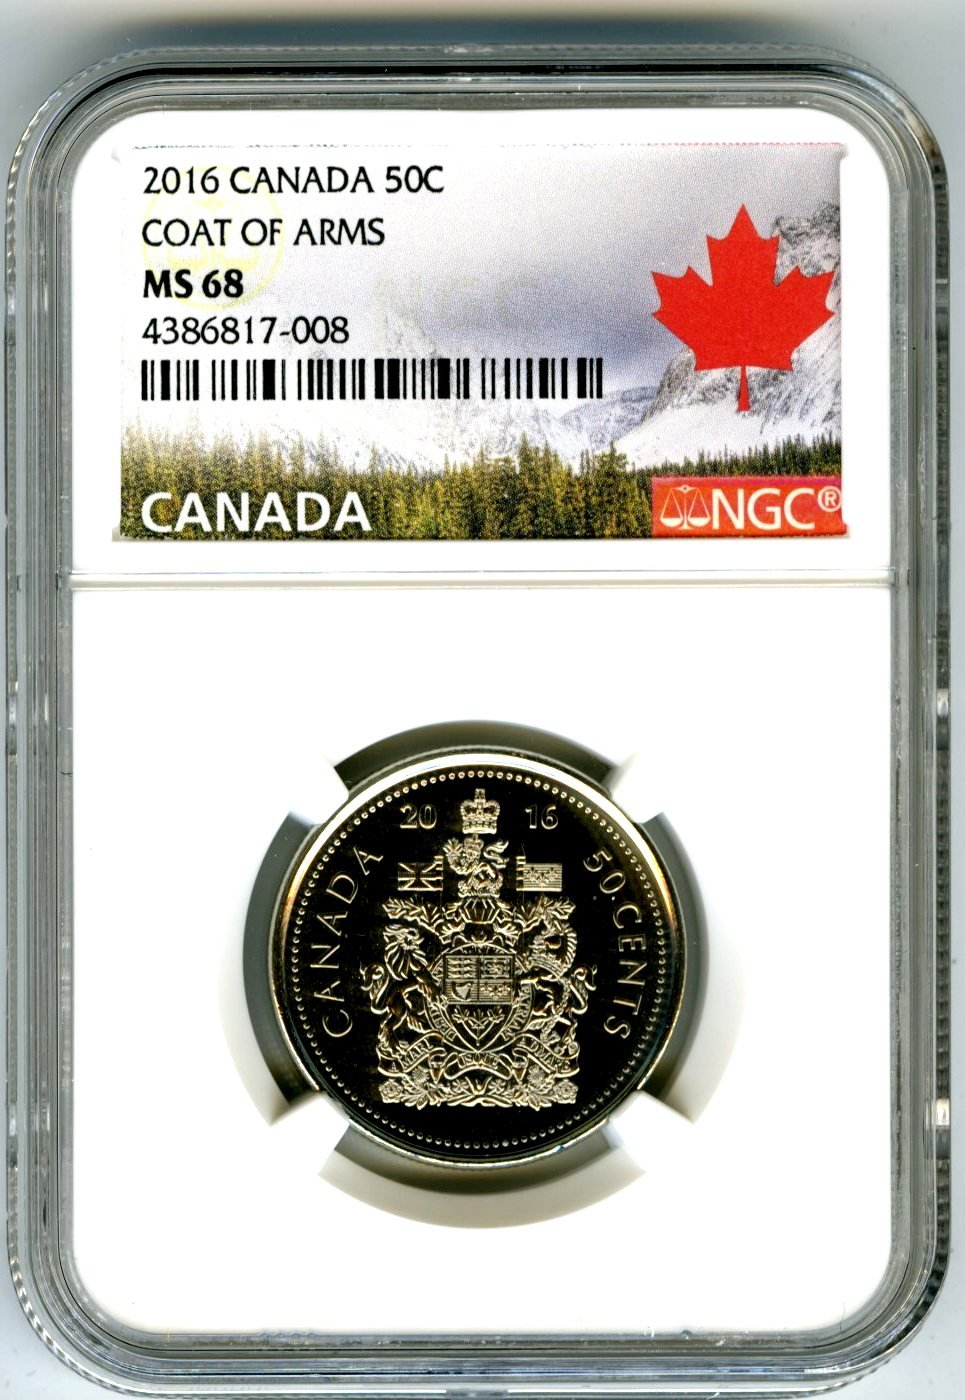 CANADA 2016 New 50 cents Coat of Arms of CANADA BU directly from mint roll